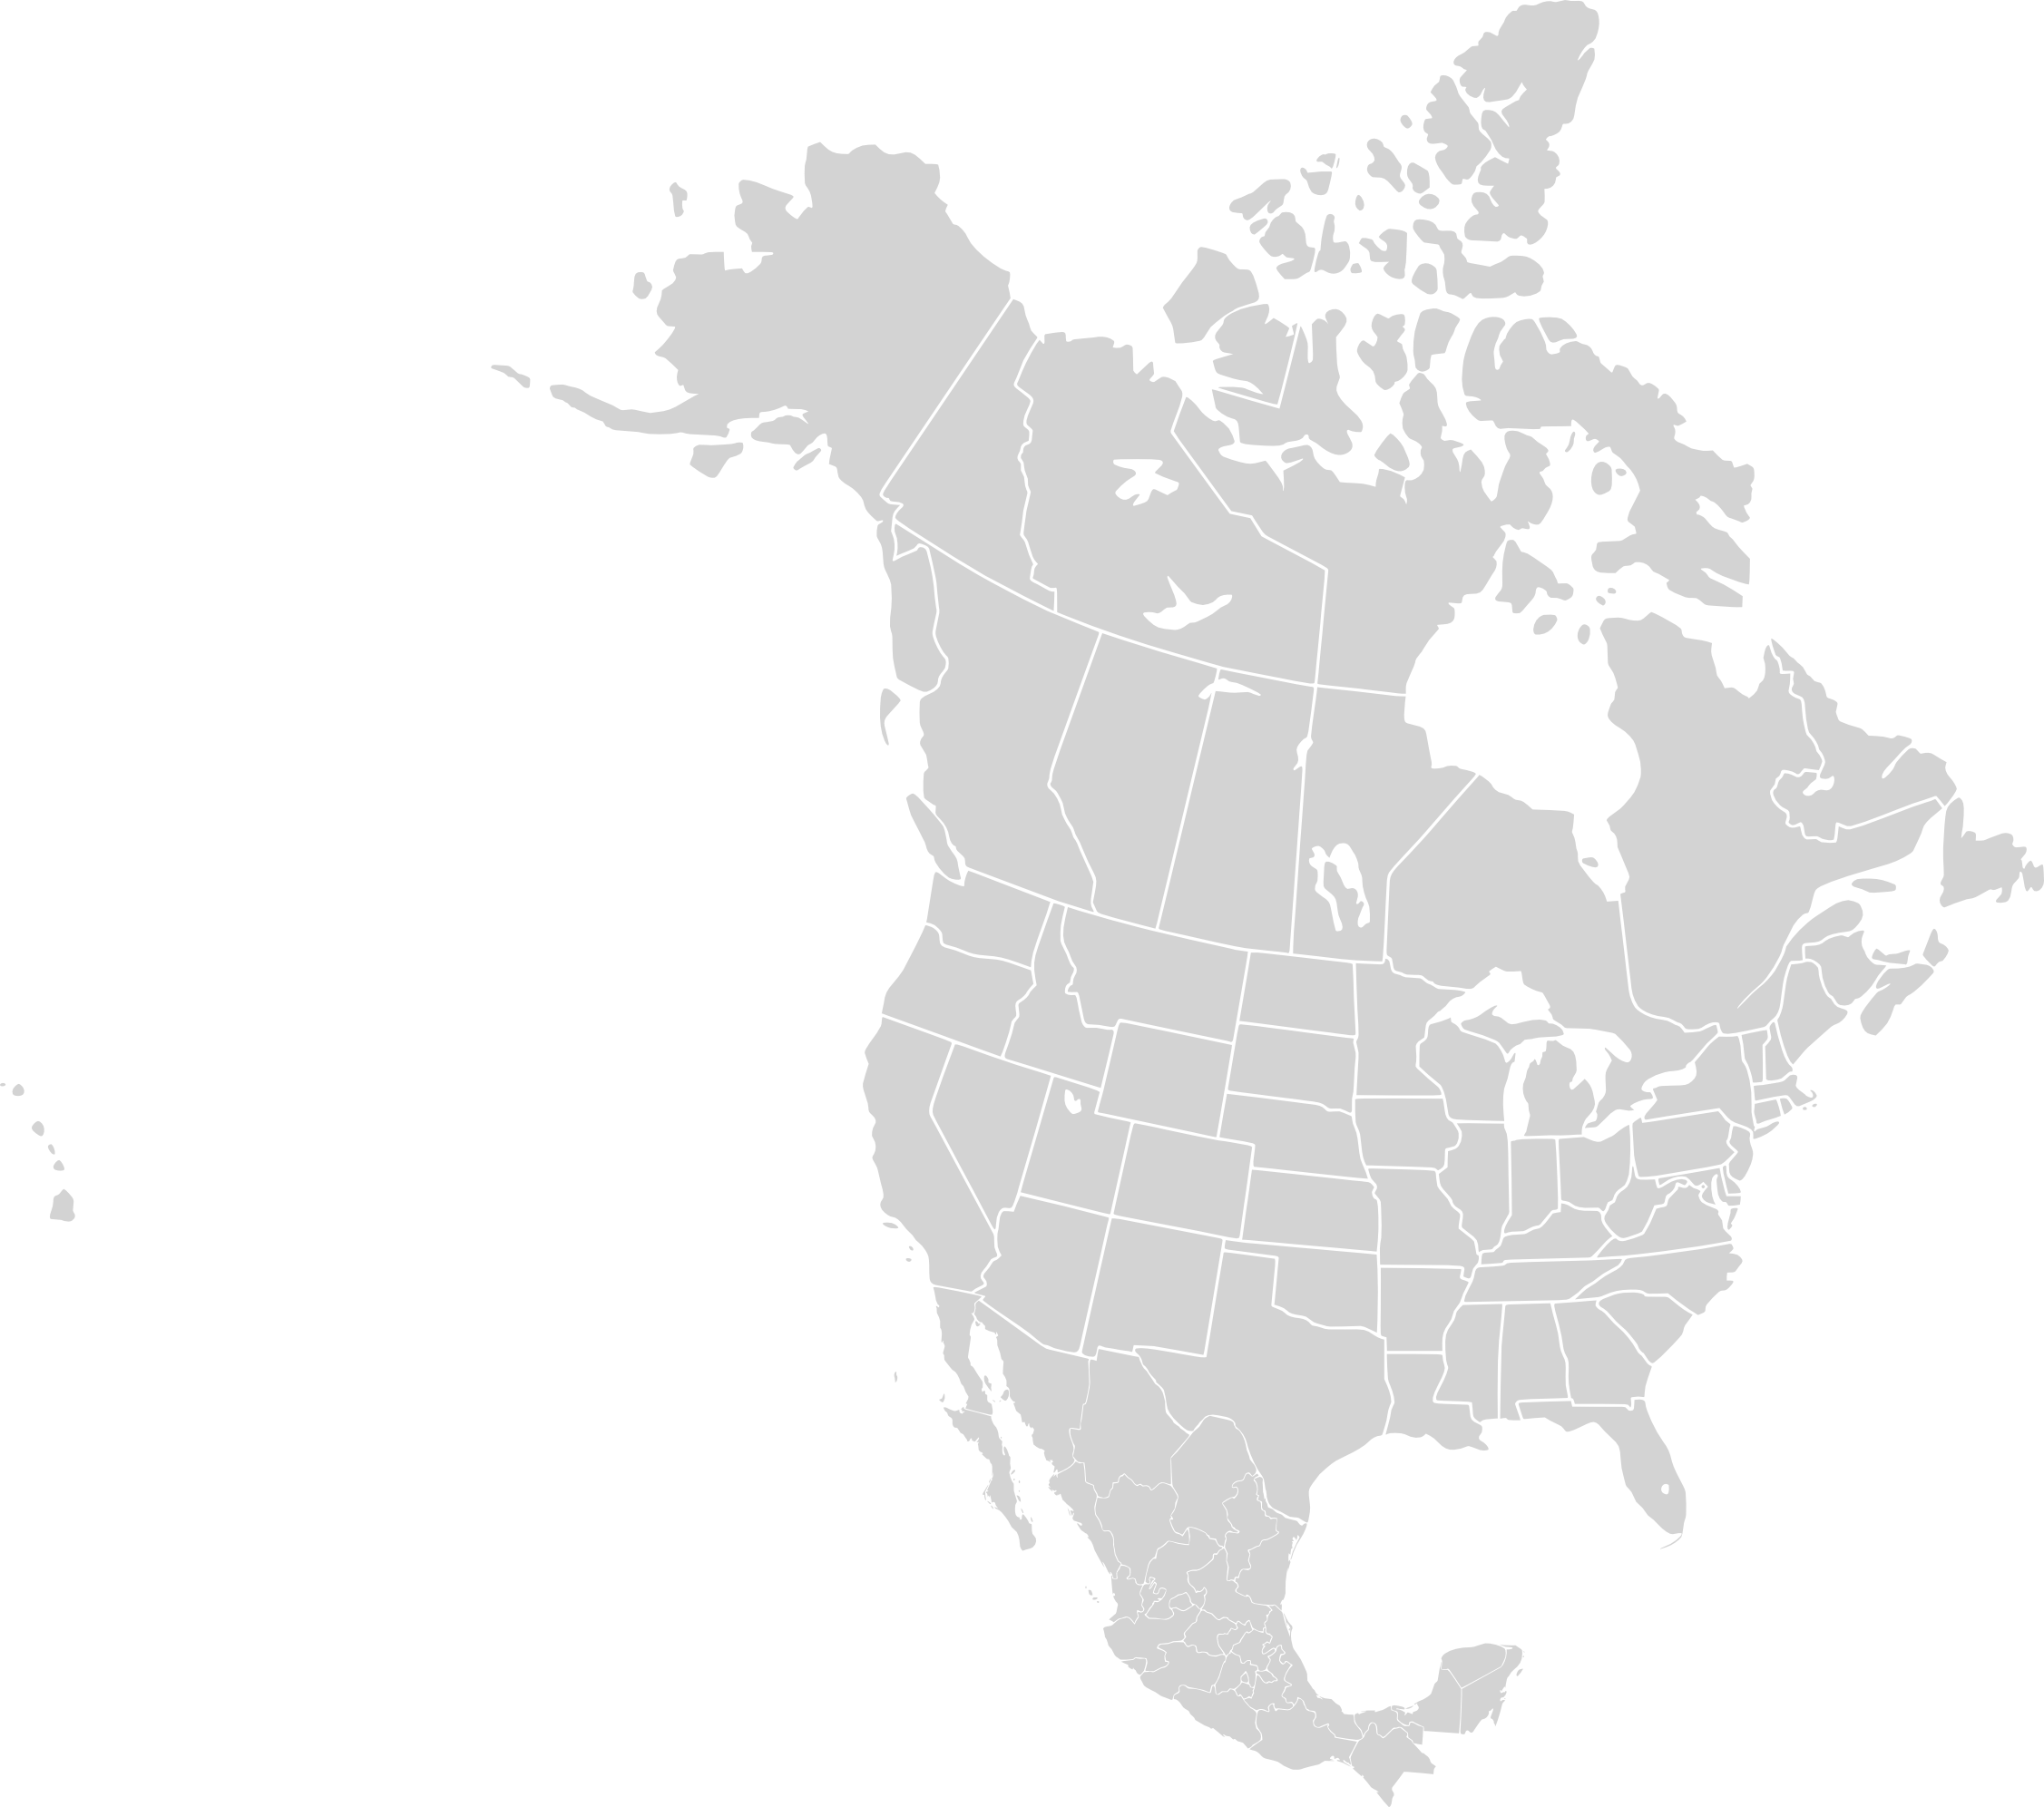 File:North America Blank Range Map.png